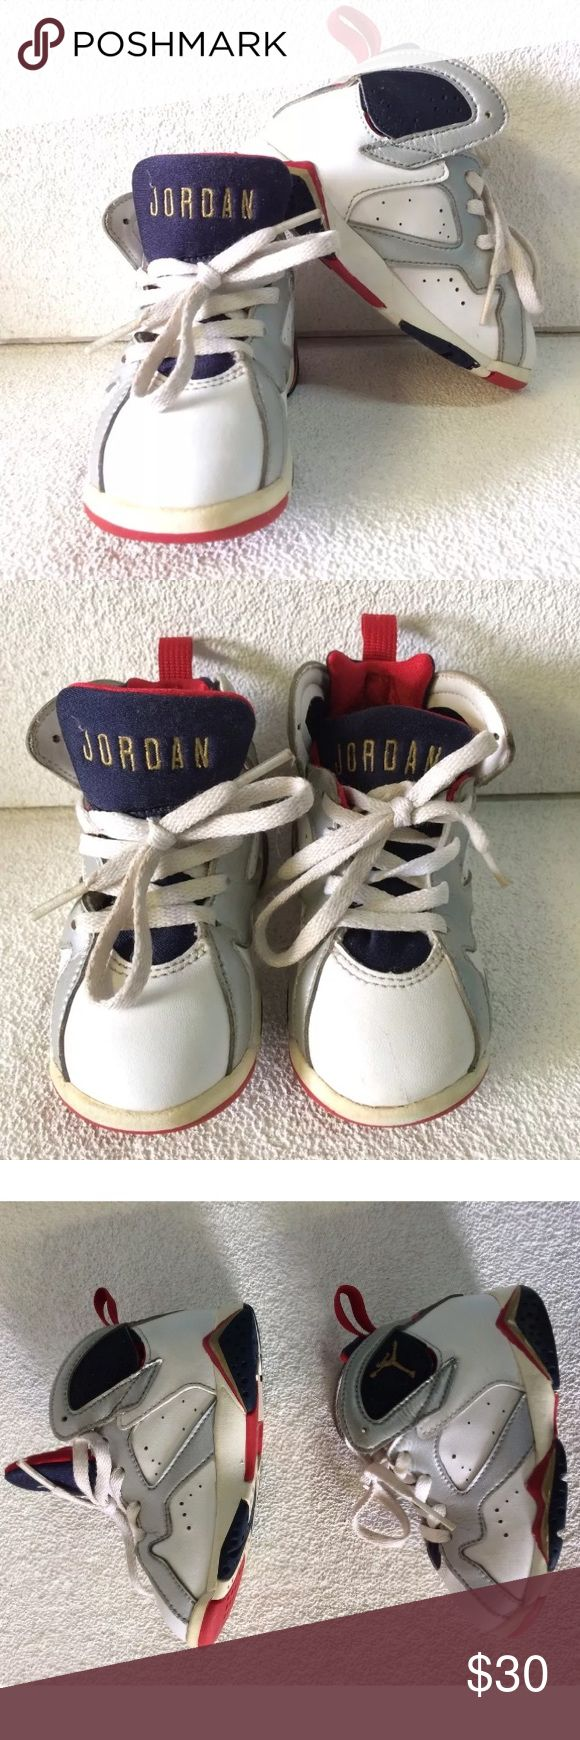 Air Jordan 7 Retro Olympic size 7C kids Jordan Used in good condition. Some dirt and wear. Size 7c. See pictures for details and condition. Jordan Shoes Sneakers